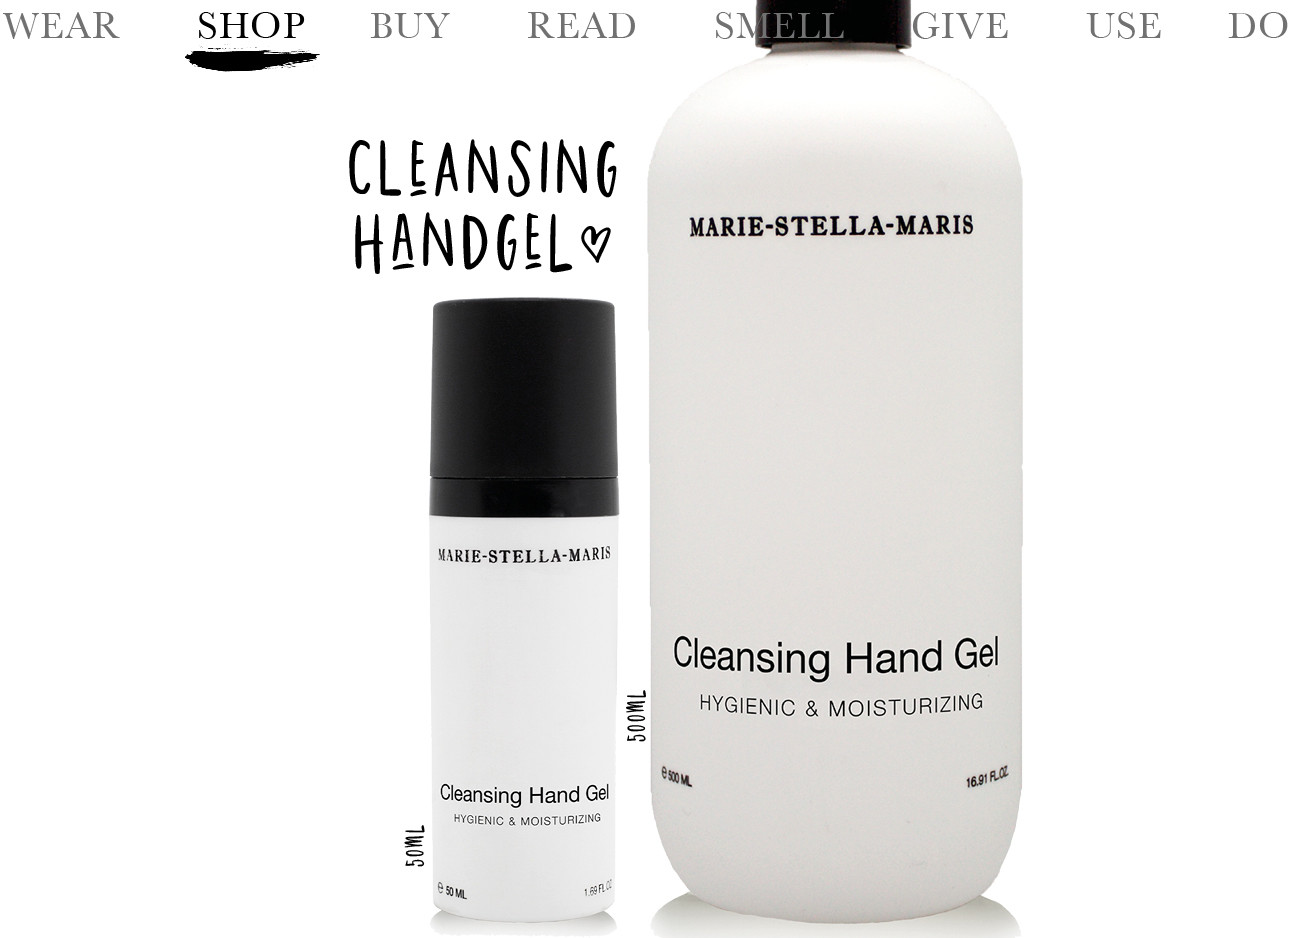 Today we use handgel van Marie-Stella-Maris